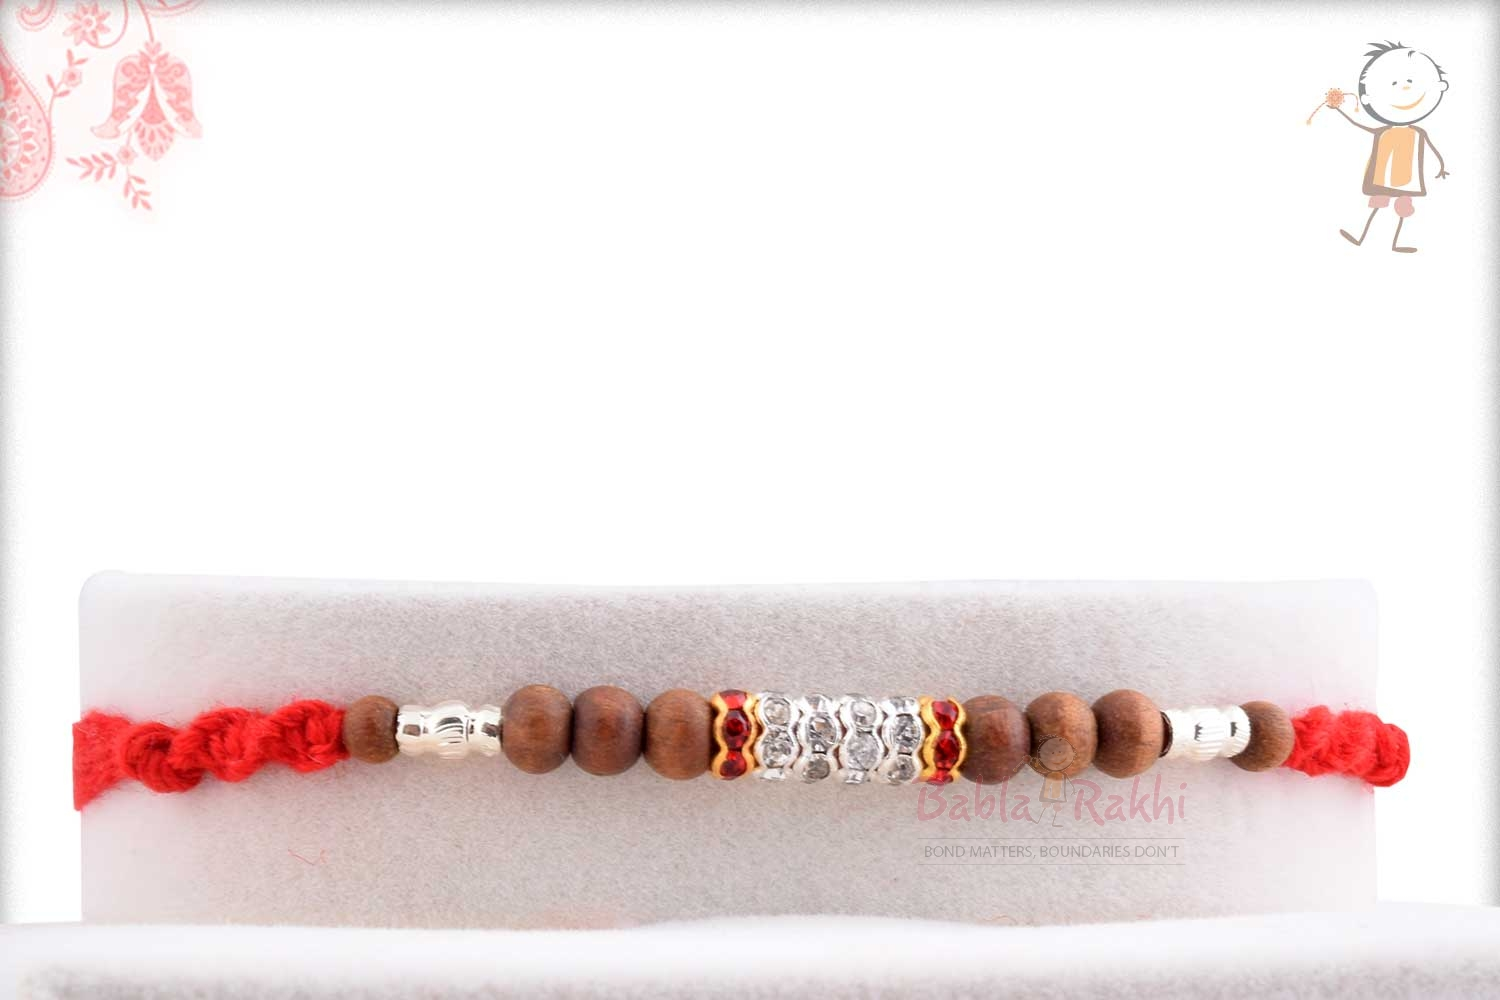 Traditional Sandalwood Beads with Silver Pipes 1